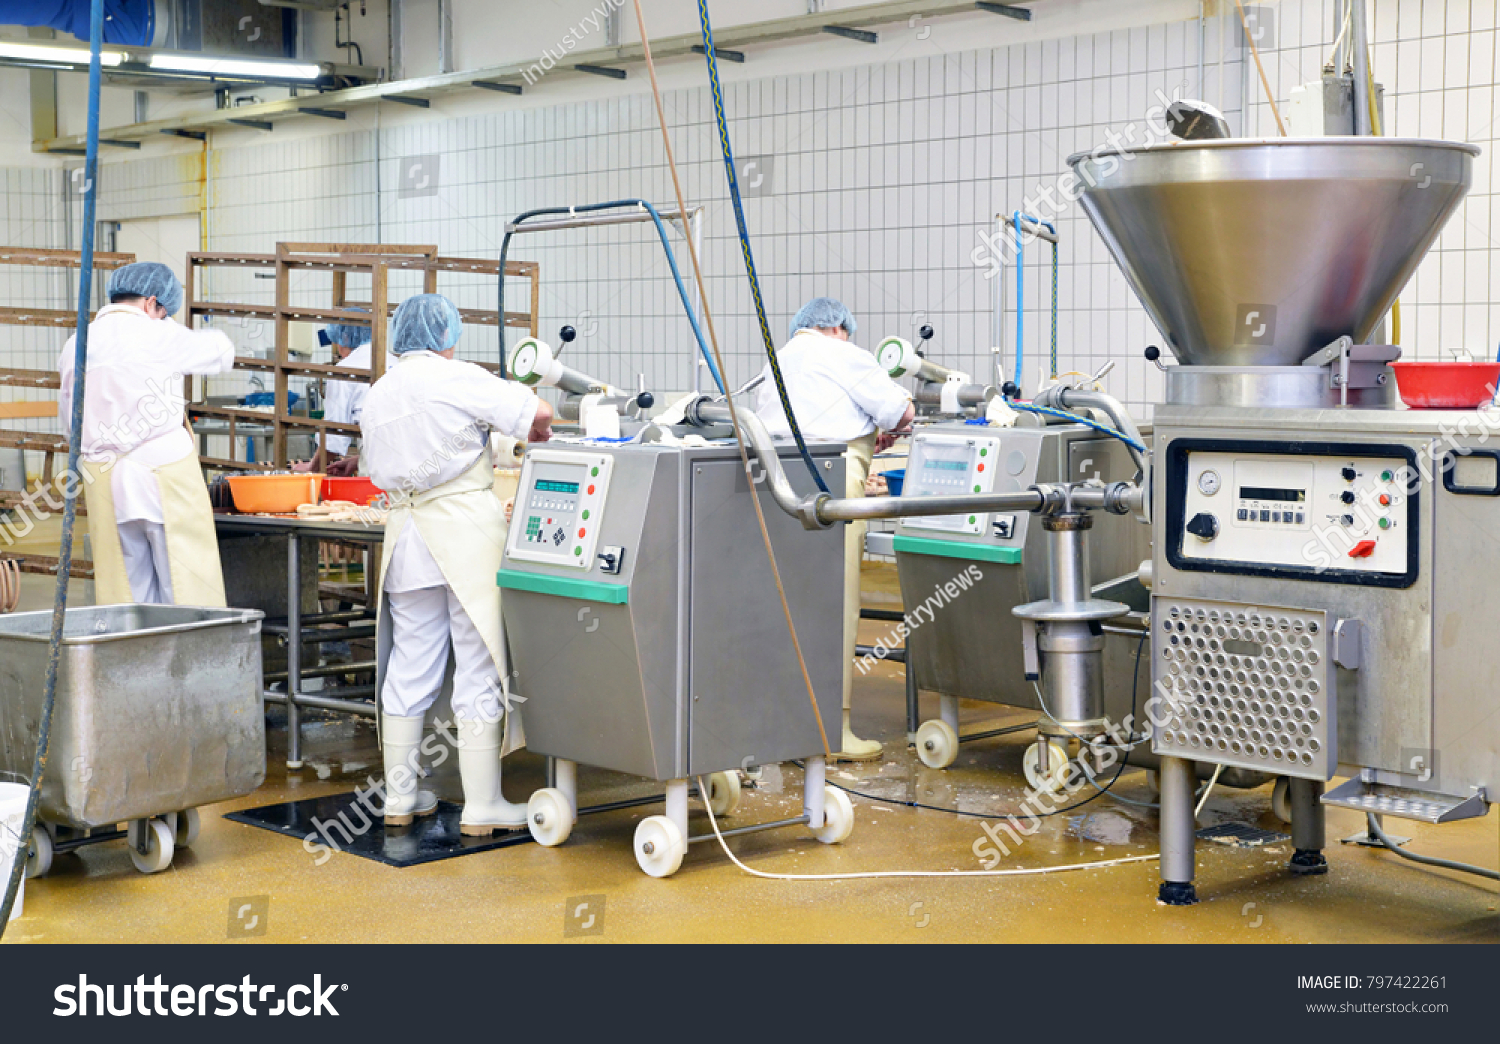 stock-photo-workers-in-the-production-of-original-german-bratwurst-in-a-large-meat-processing-plant-in-the-food-797422261